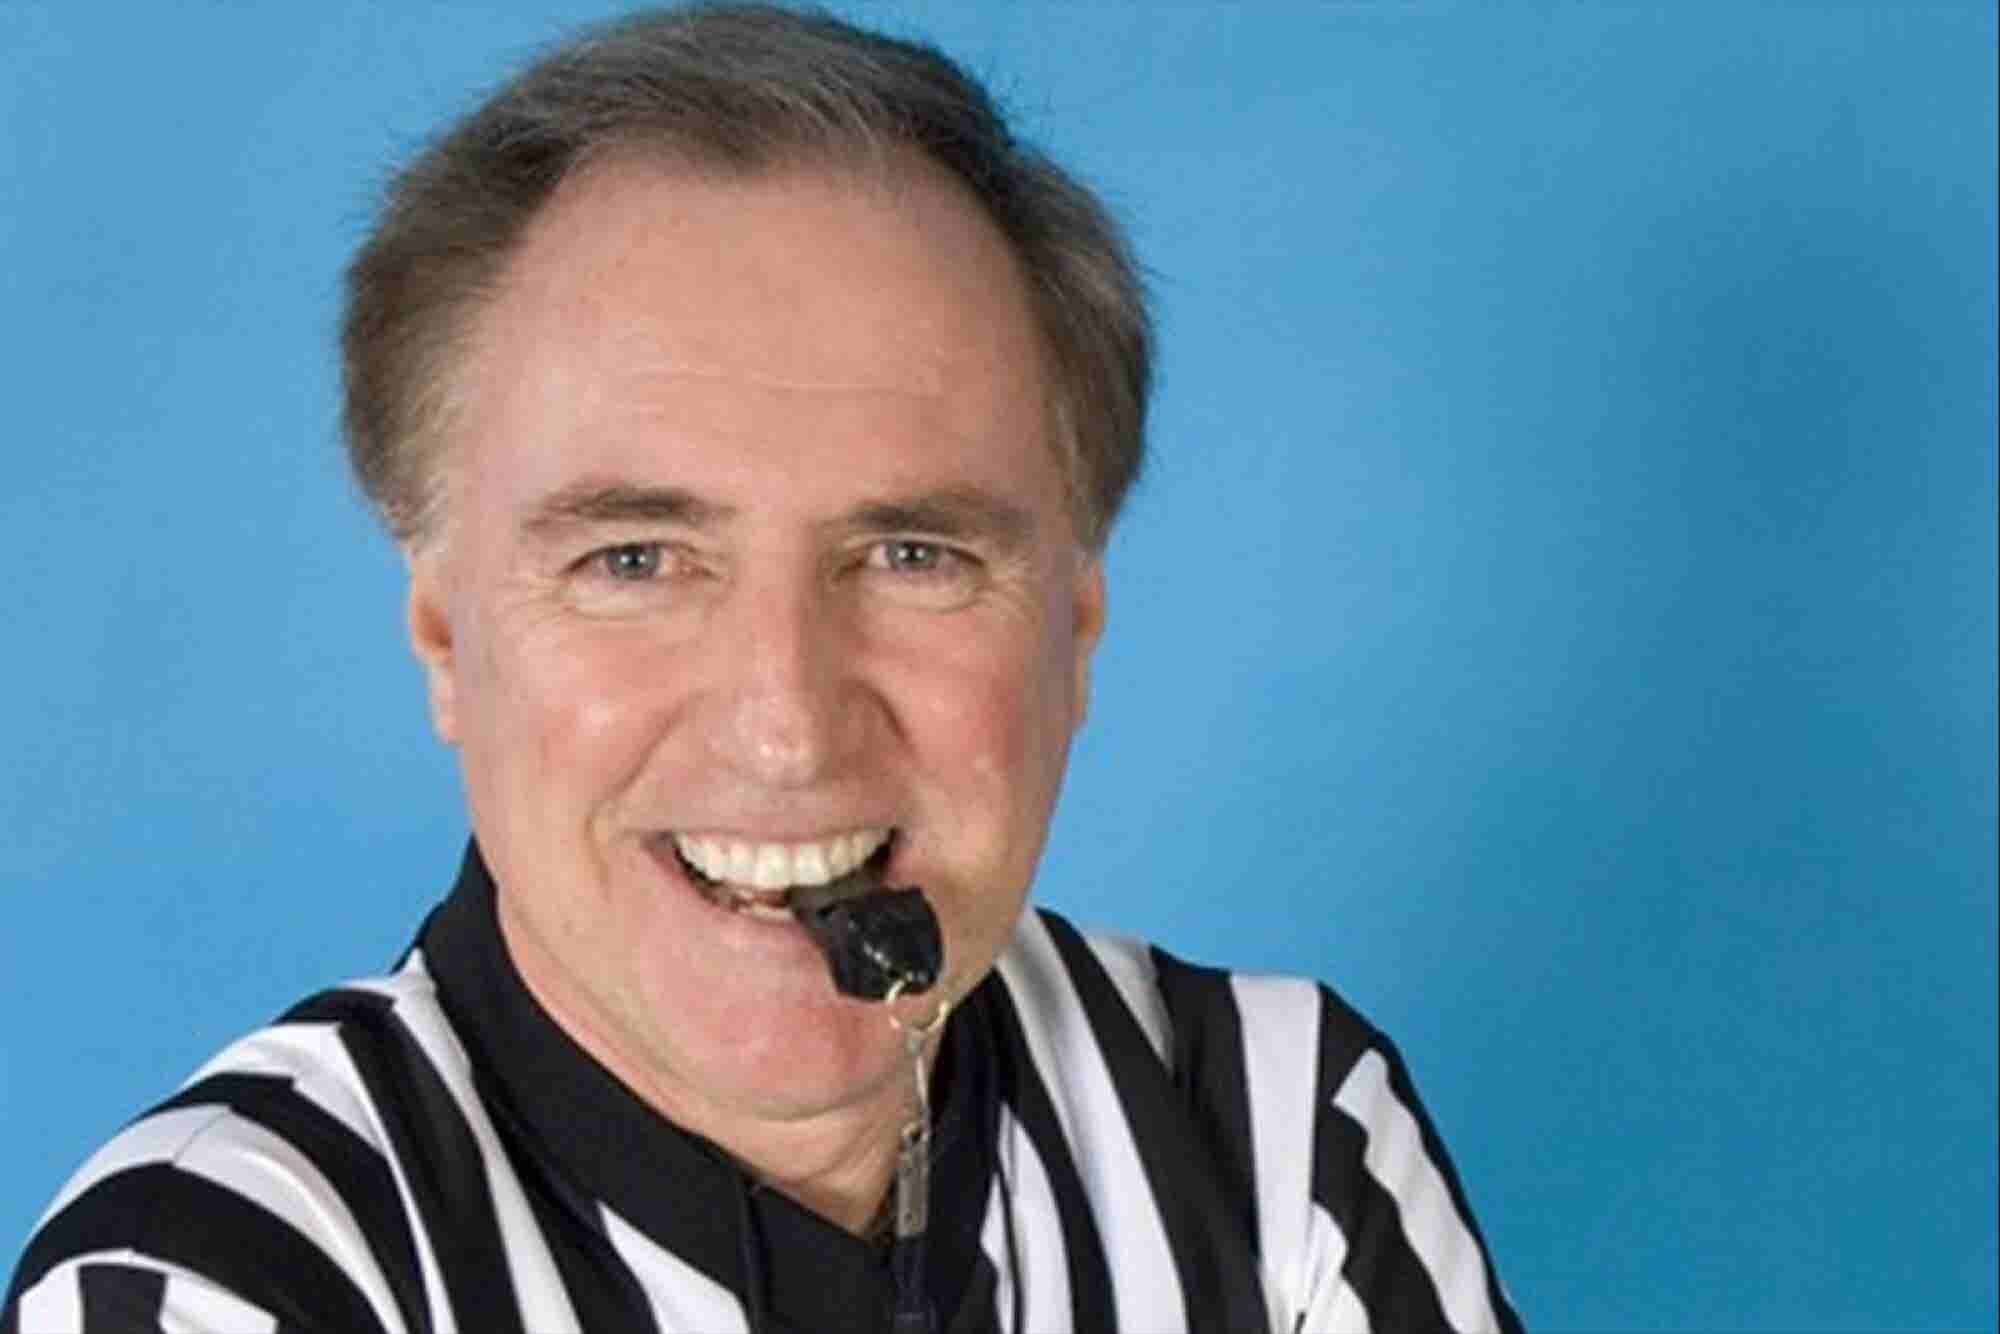 How Blowing a Whistle at 3 a.m. Meant Big Business for One Referee